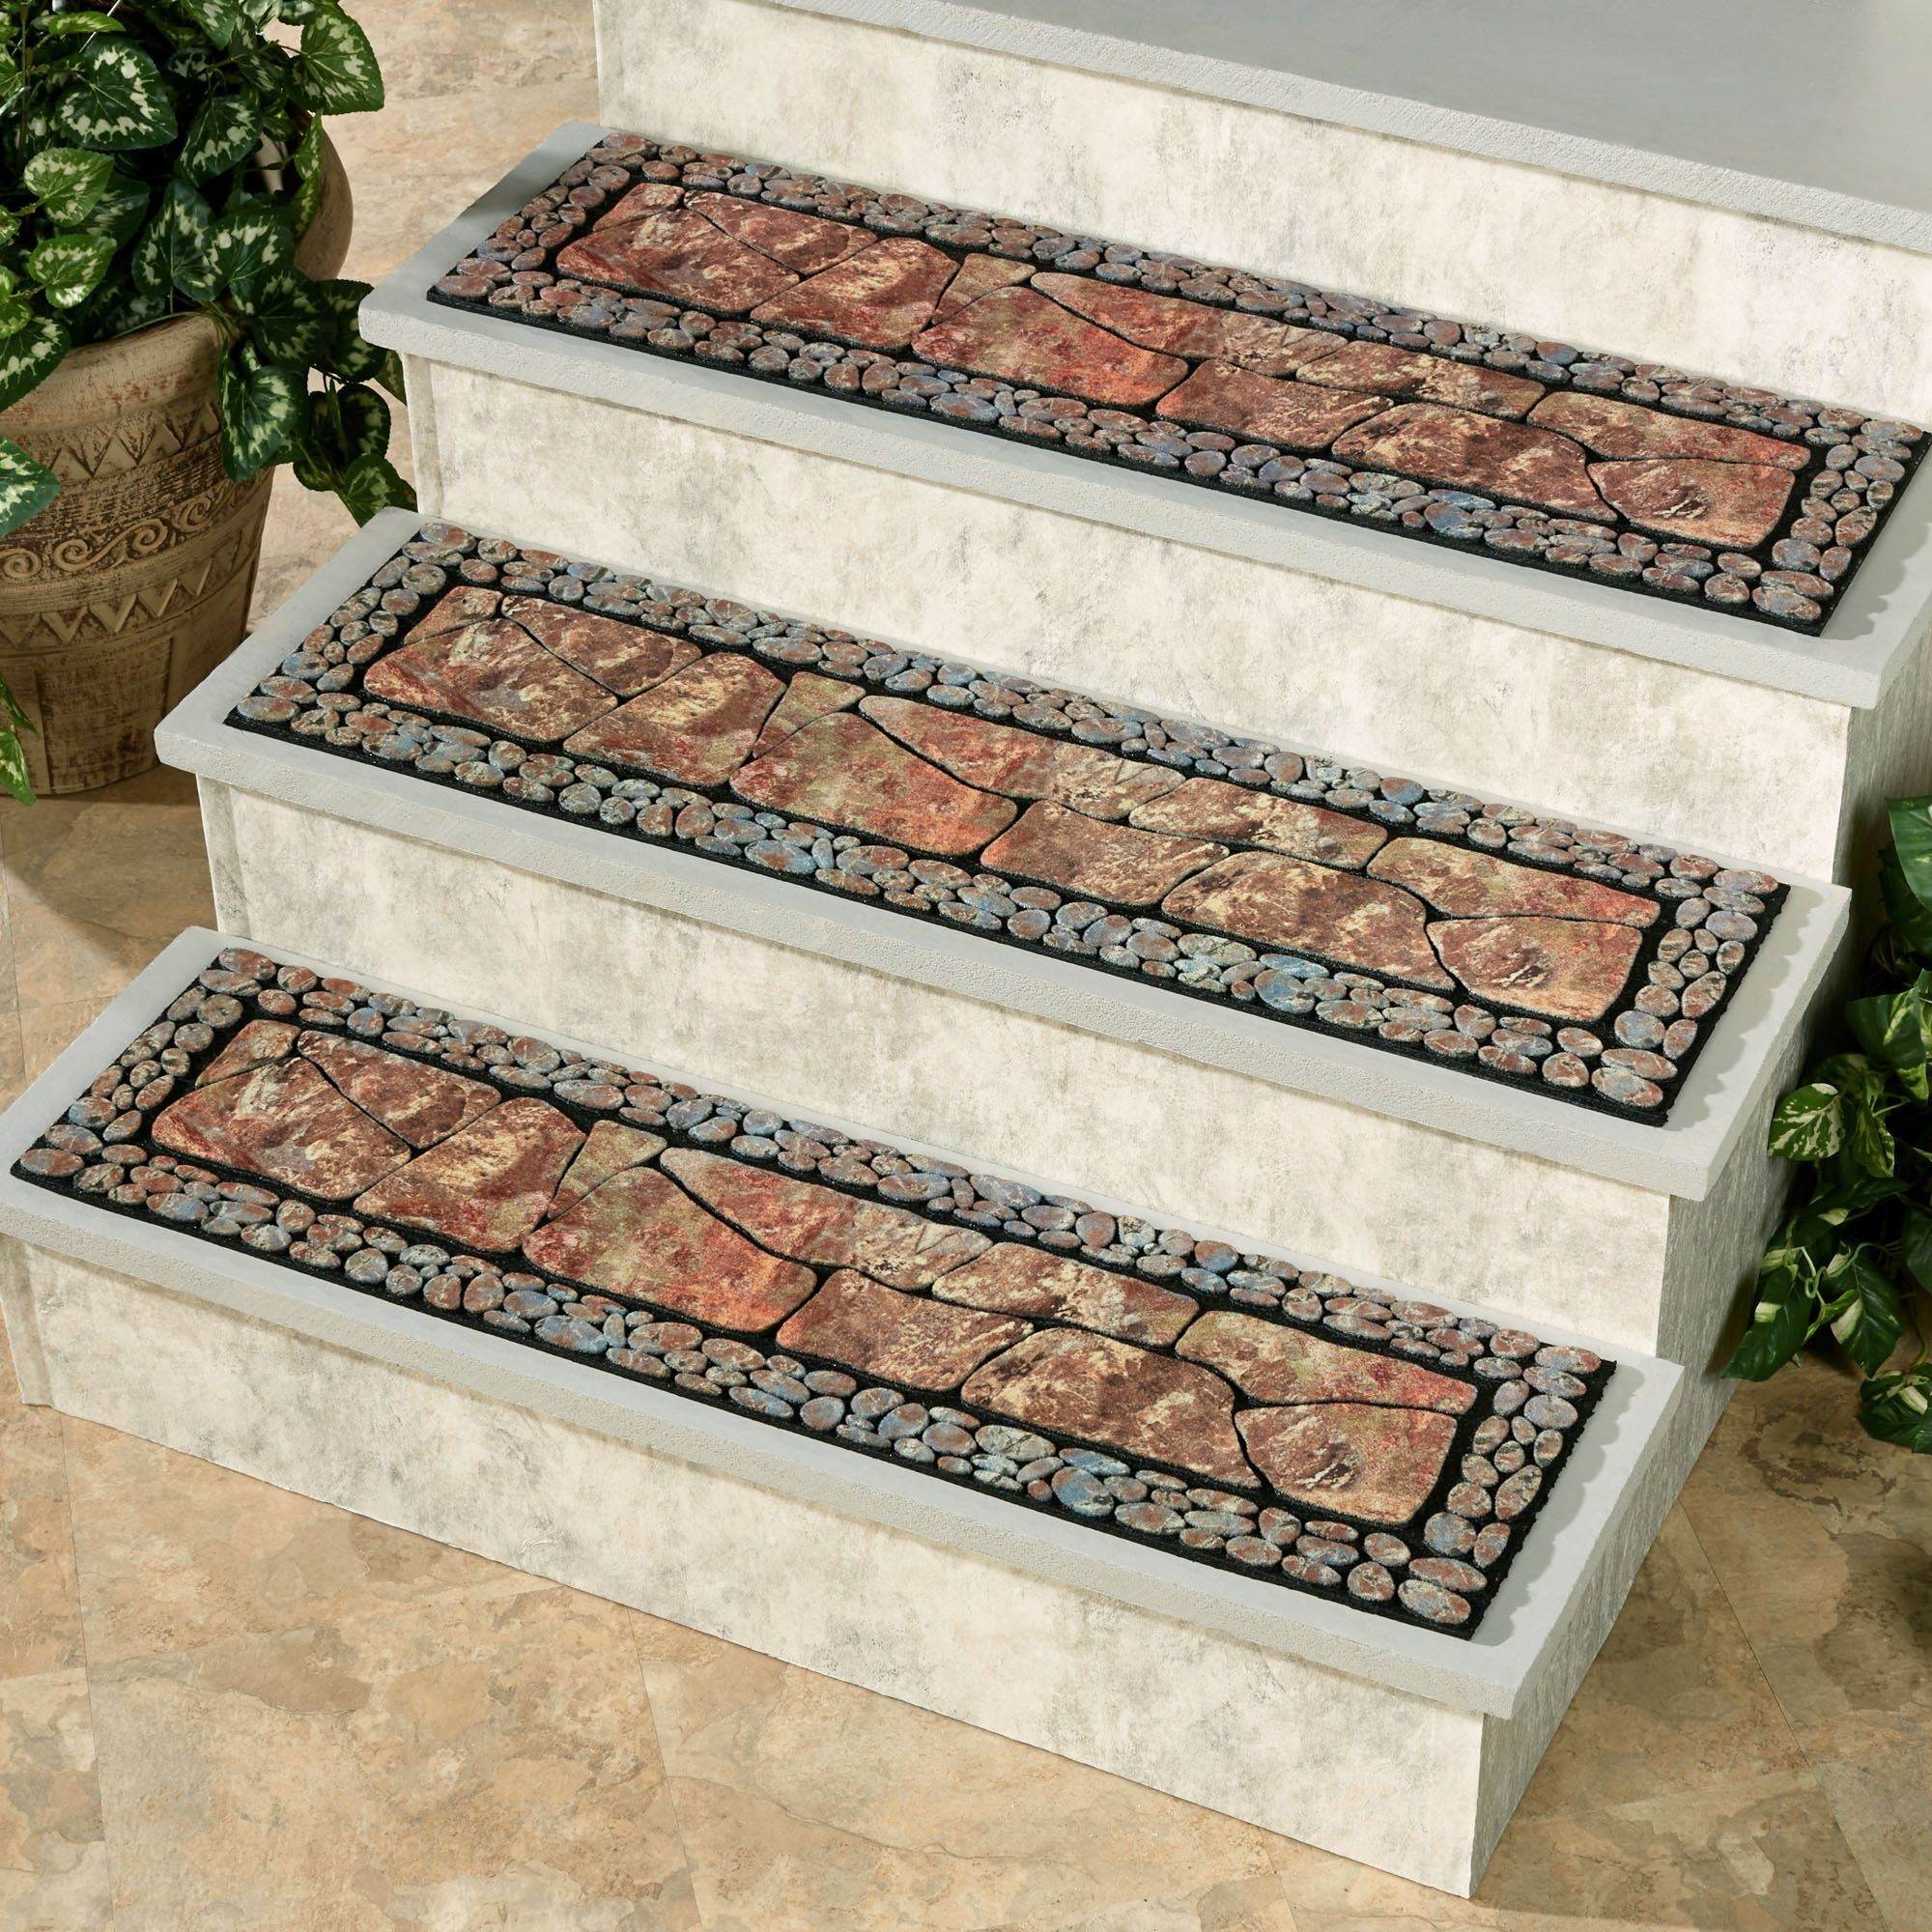 Outdoor Doormats And Stair Treads Touch Of Class Intended For Decorative Stair Treads (View 2 of 15)